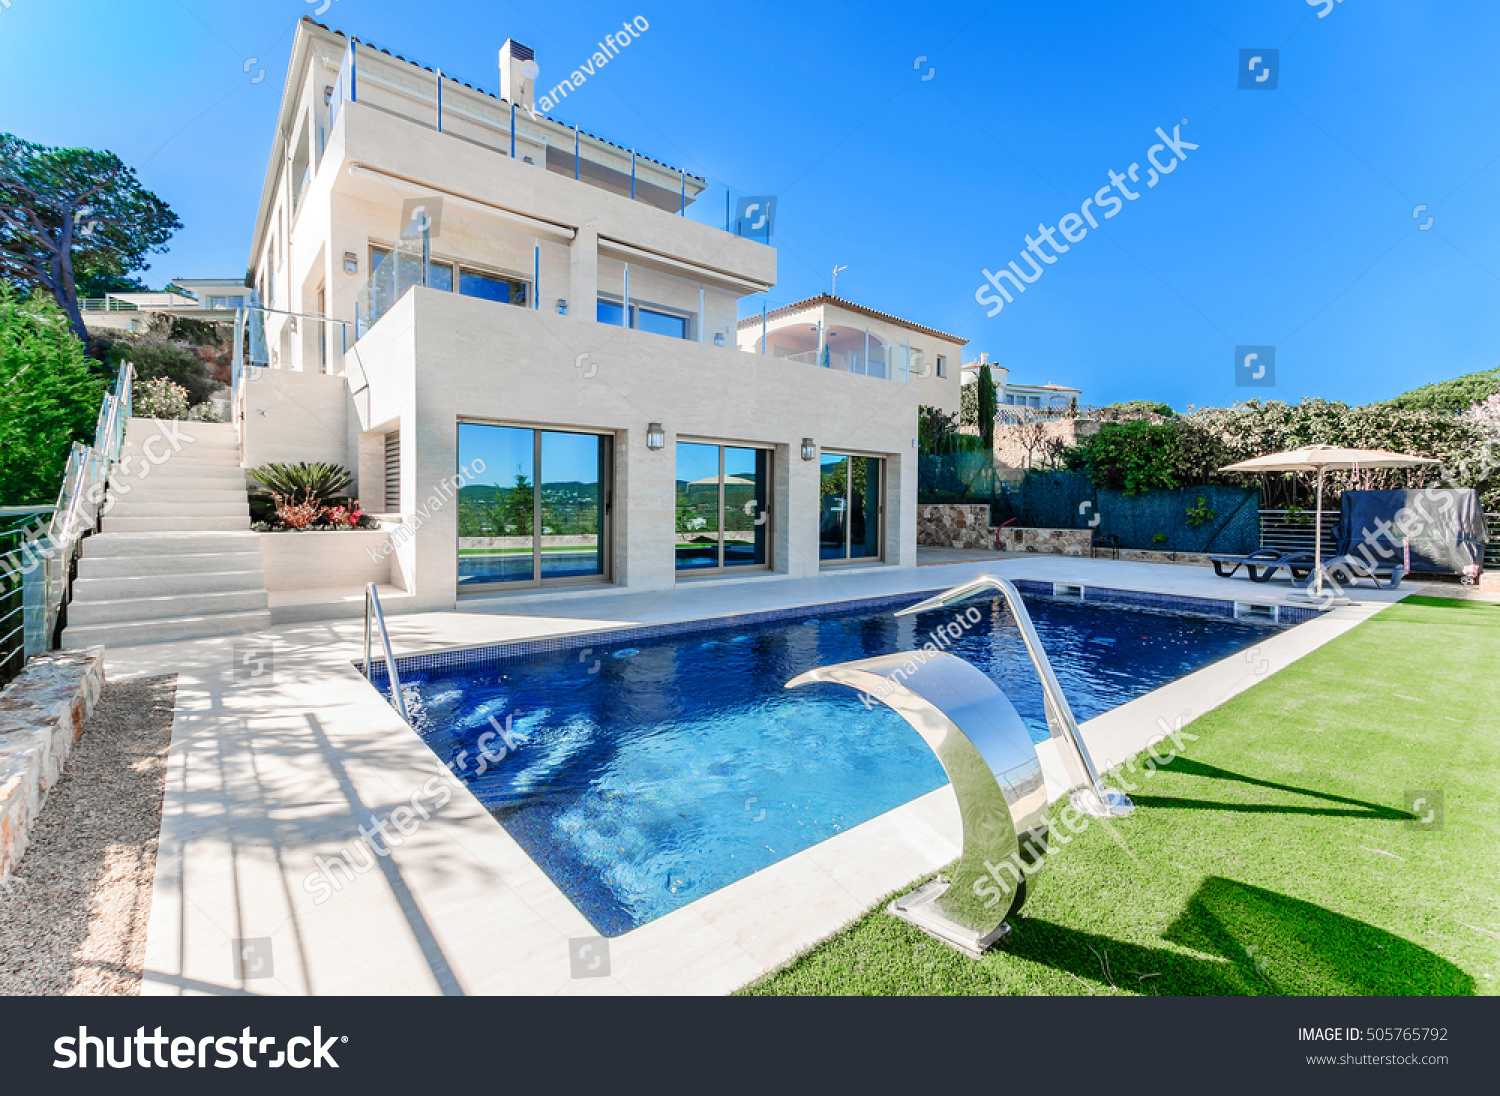 Luxury modern house with swimming pool with waterfall jet house marble